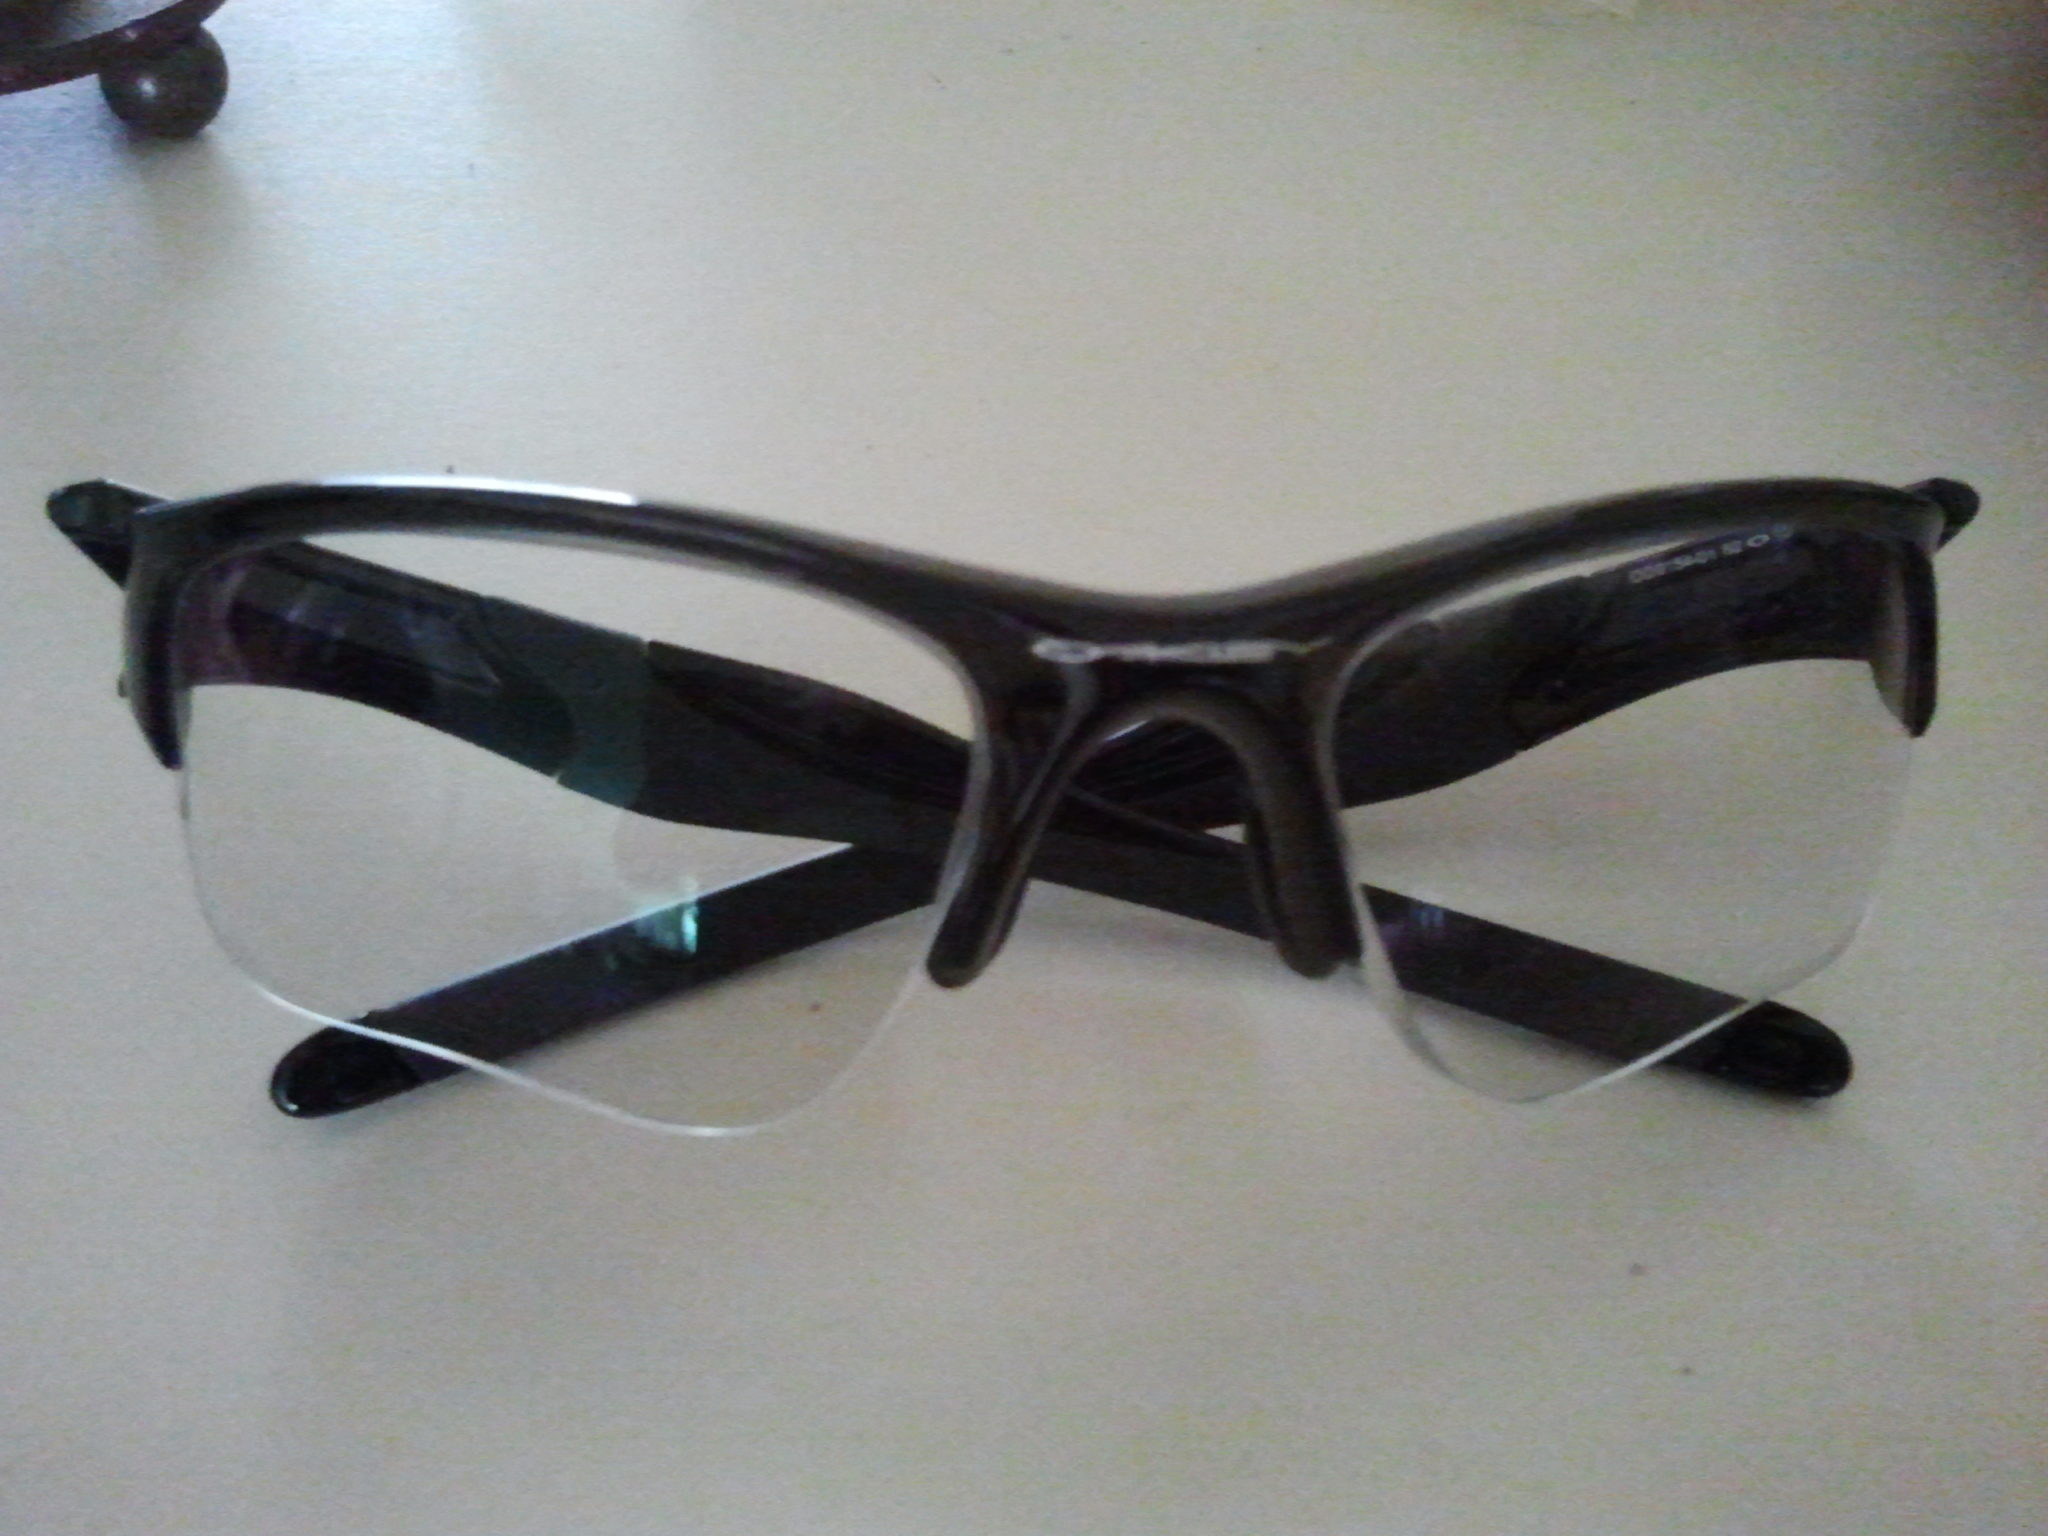 vocbu Review: Prescription riding glasses from Sport Rx — great glasses